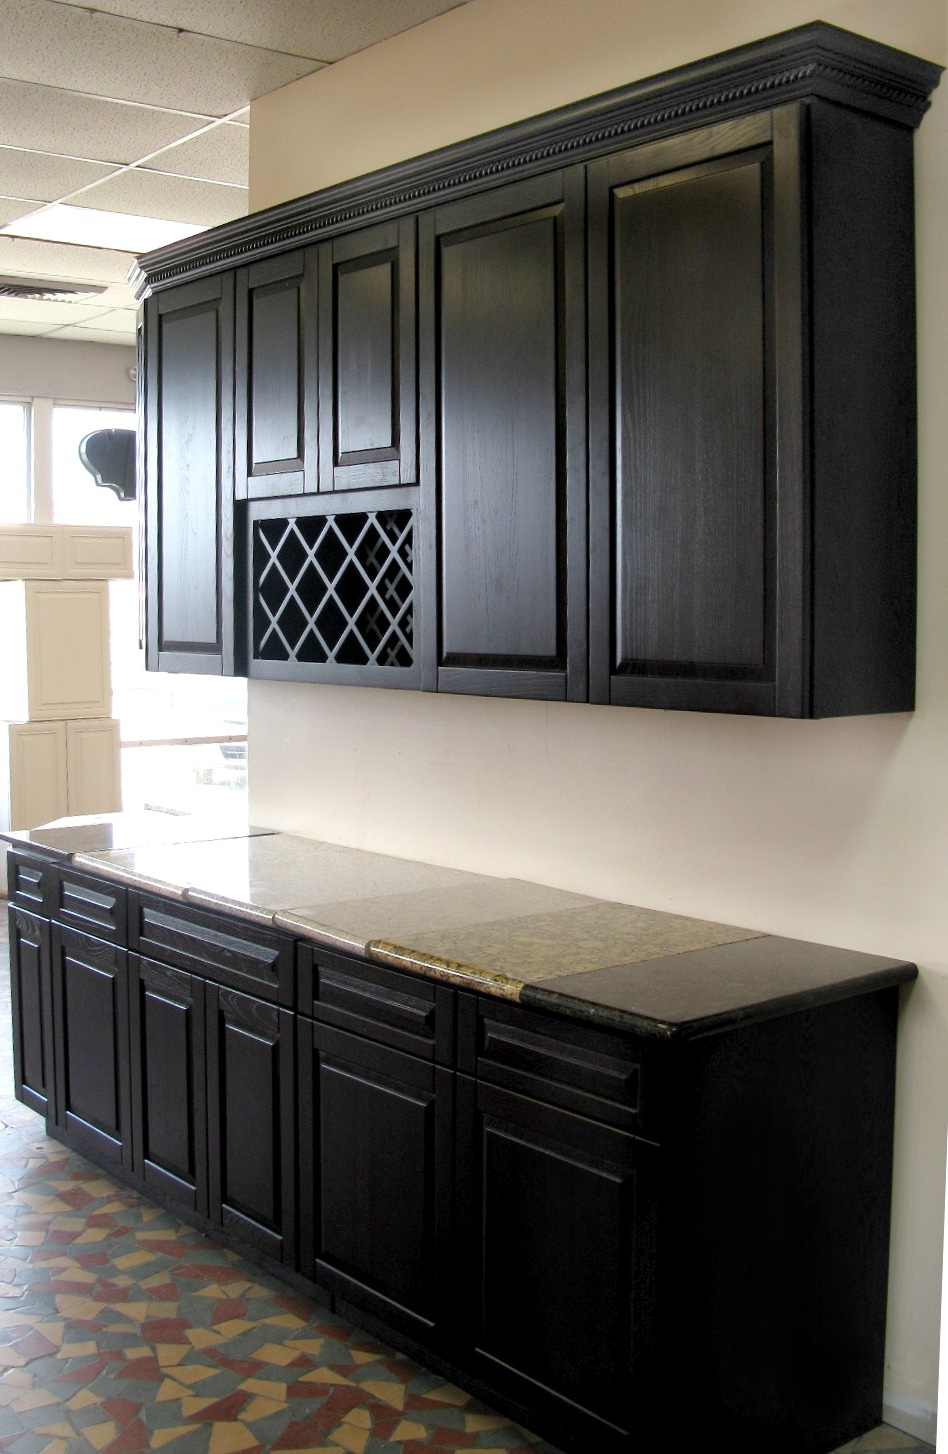 Cabinets for kitchen photos black kitchen cabinets for Kitchen cabinets design